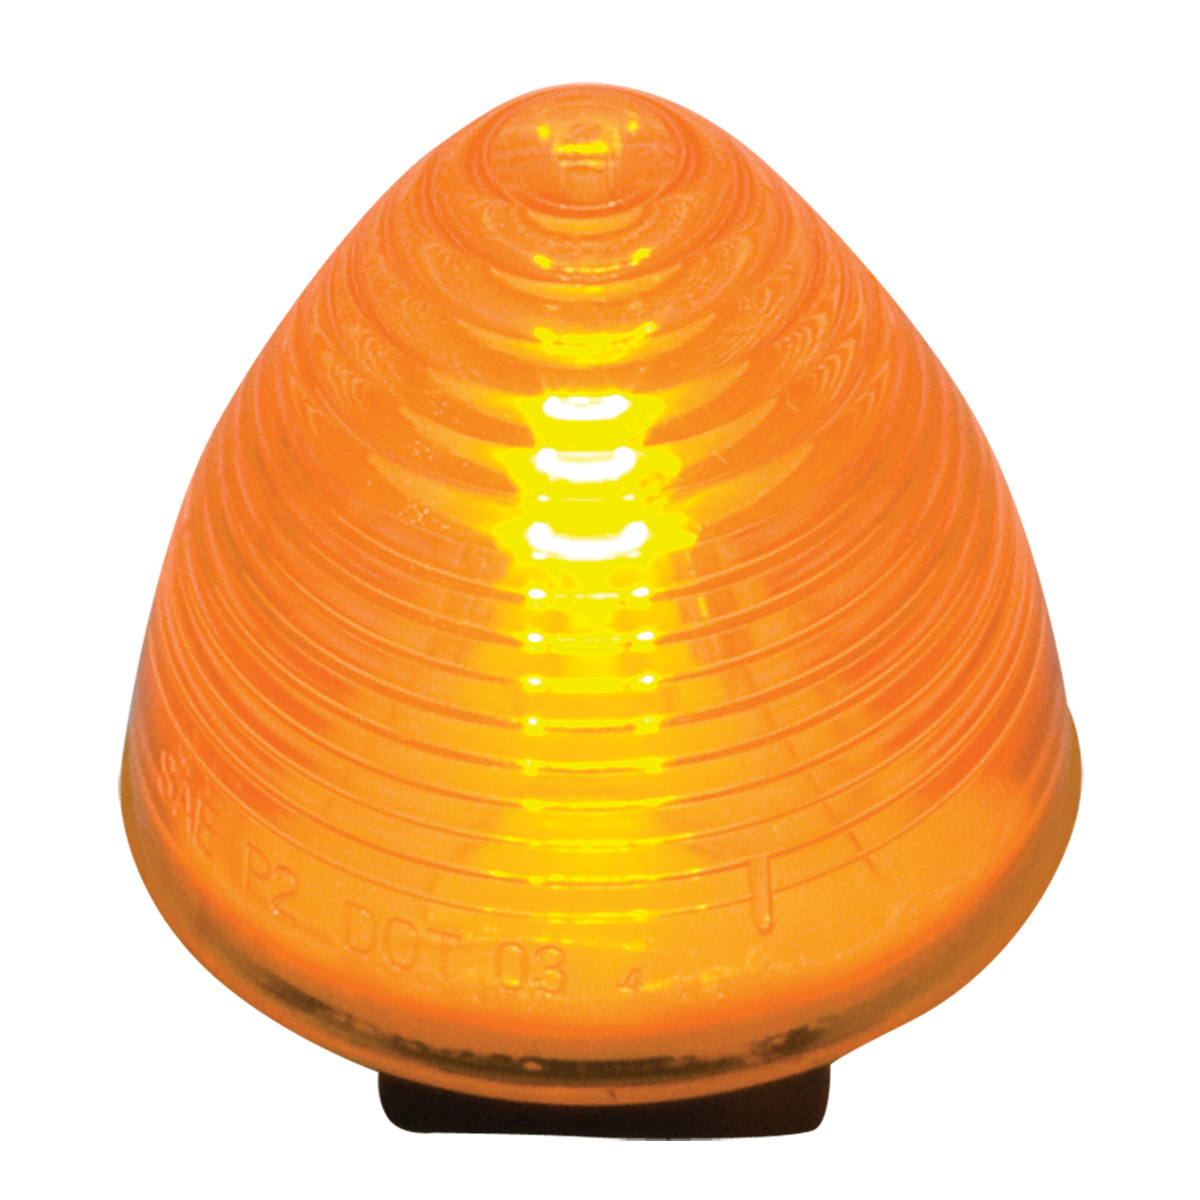 "#80942 2"" Beehive Incandescent Flat Amber/Amber Light"